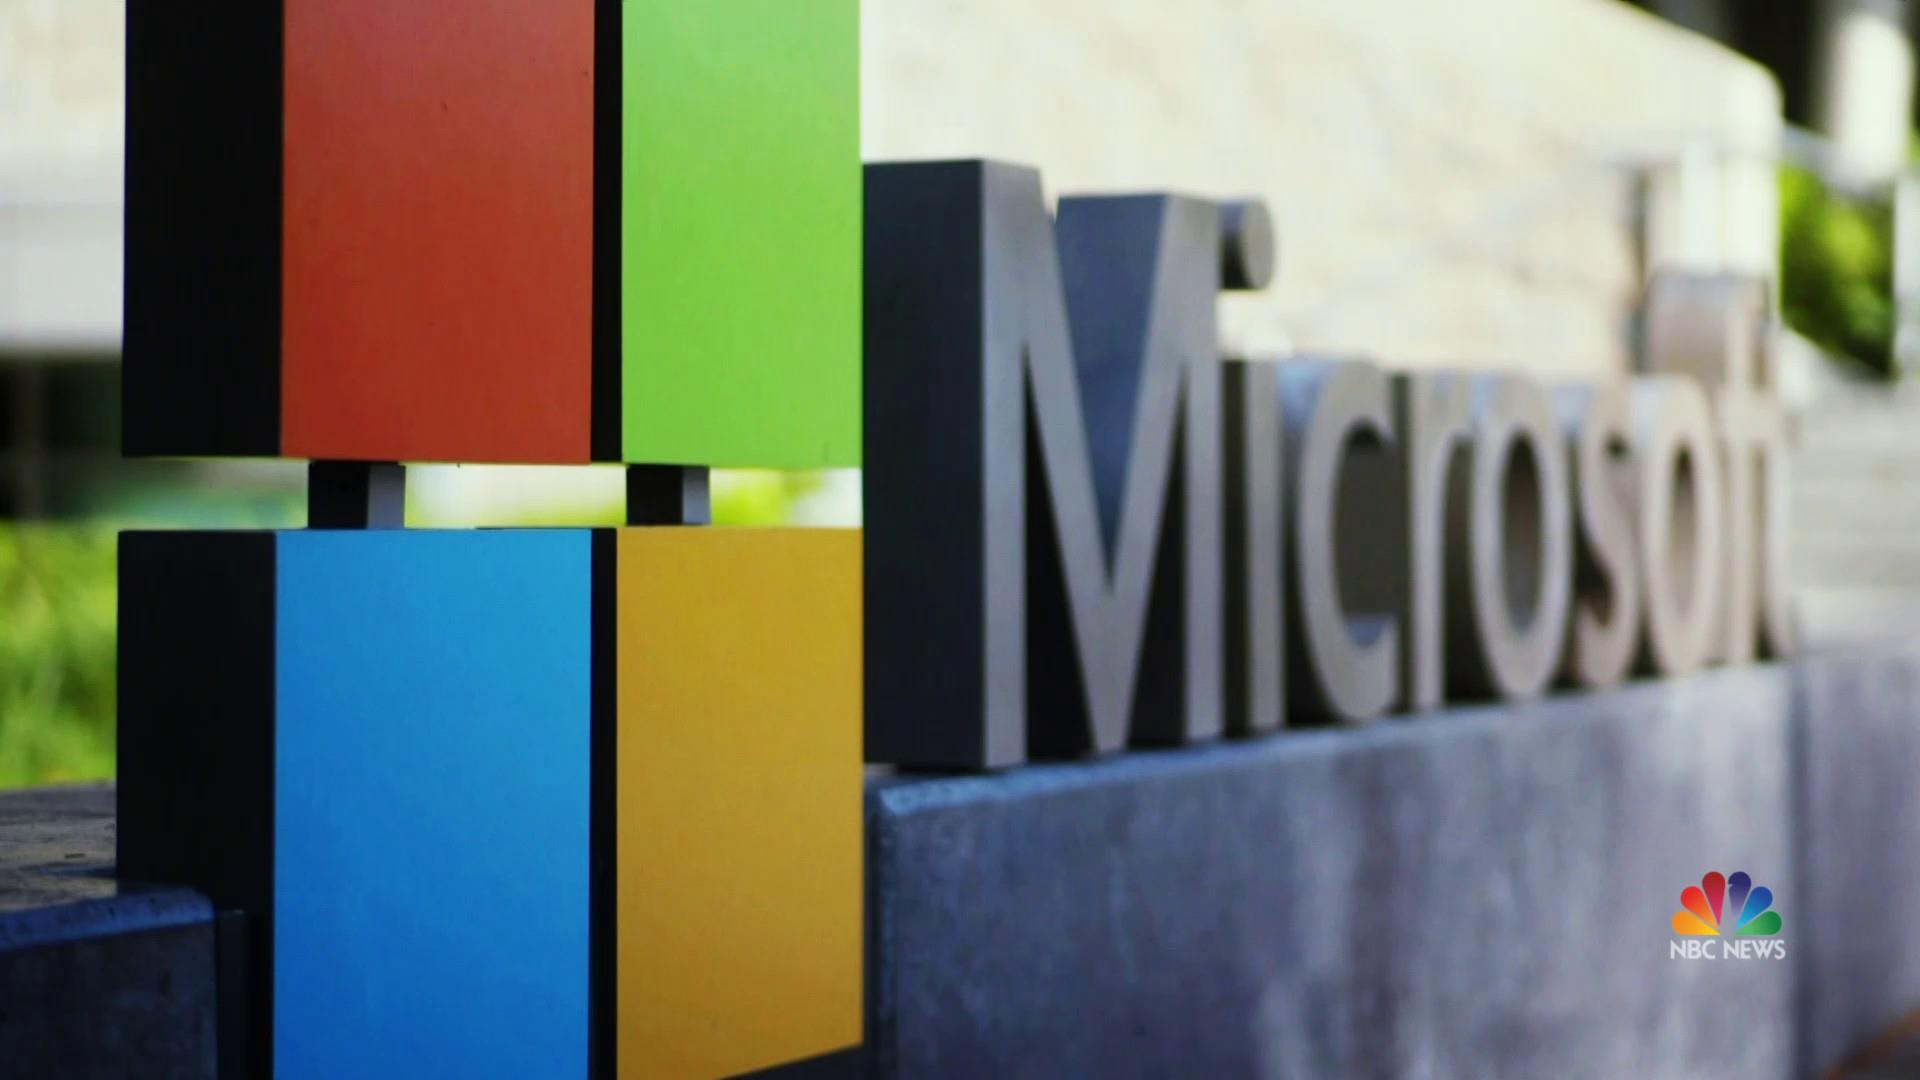 Iran-linked hackers tried to compromise presidential campaign, Microsoft says